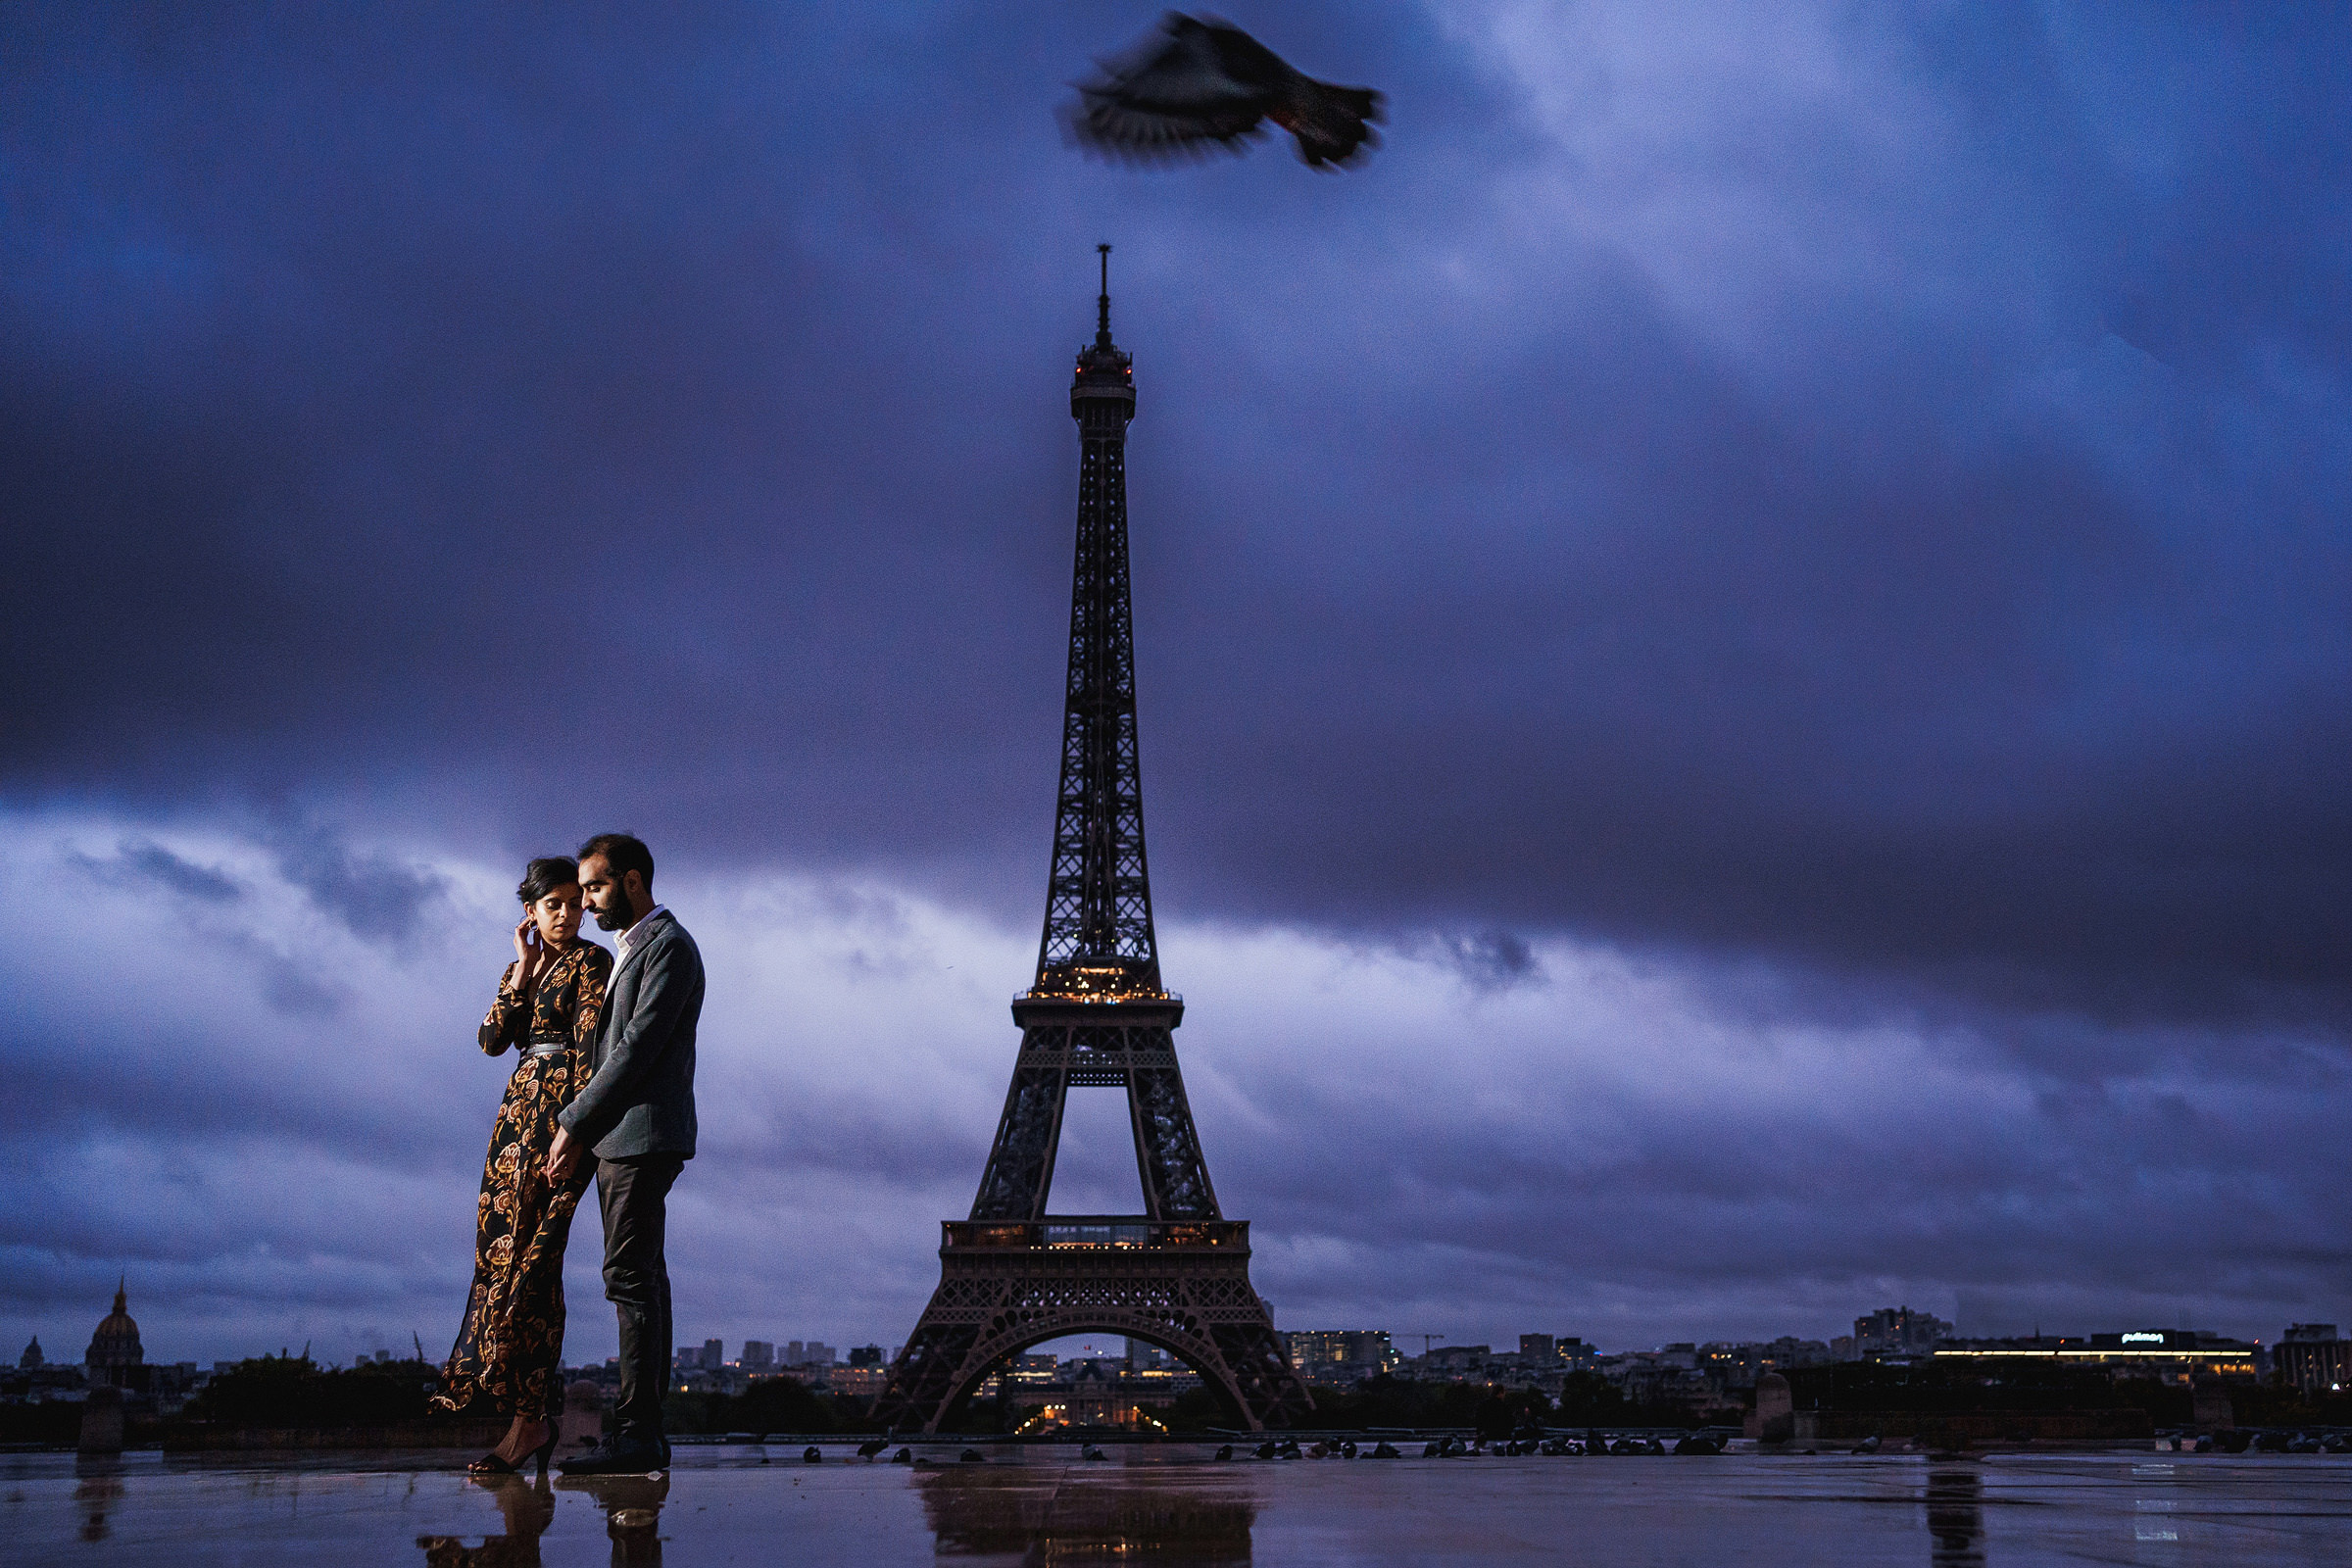 Engagement portrait at Eiffel Tower on cloudy eveining by Rahul Khona F5 - London